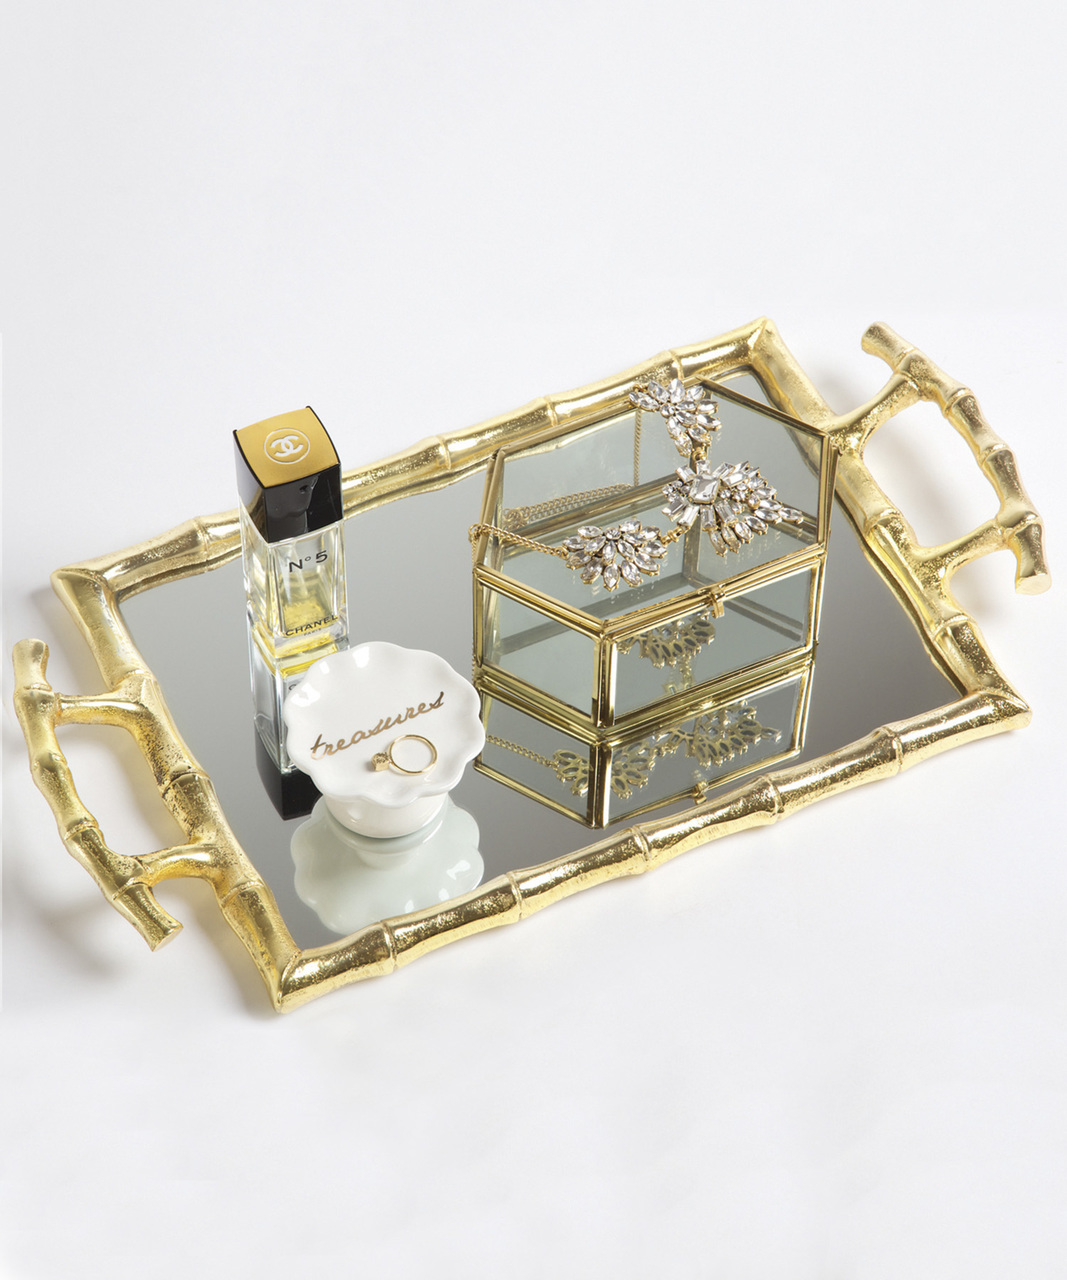 awesome mirrored vanity tray alluring mirrored vanity tray admirable mirrored vanity tray